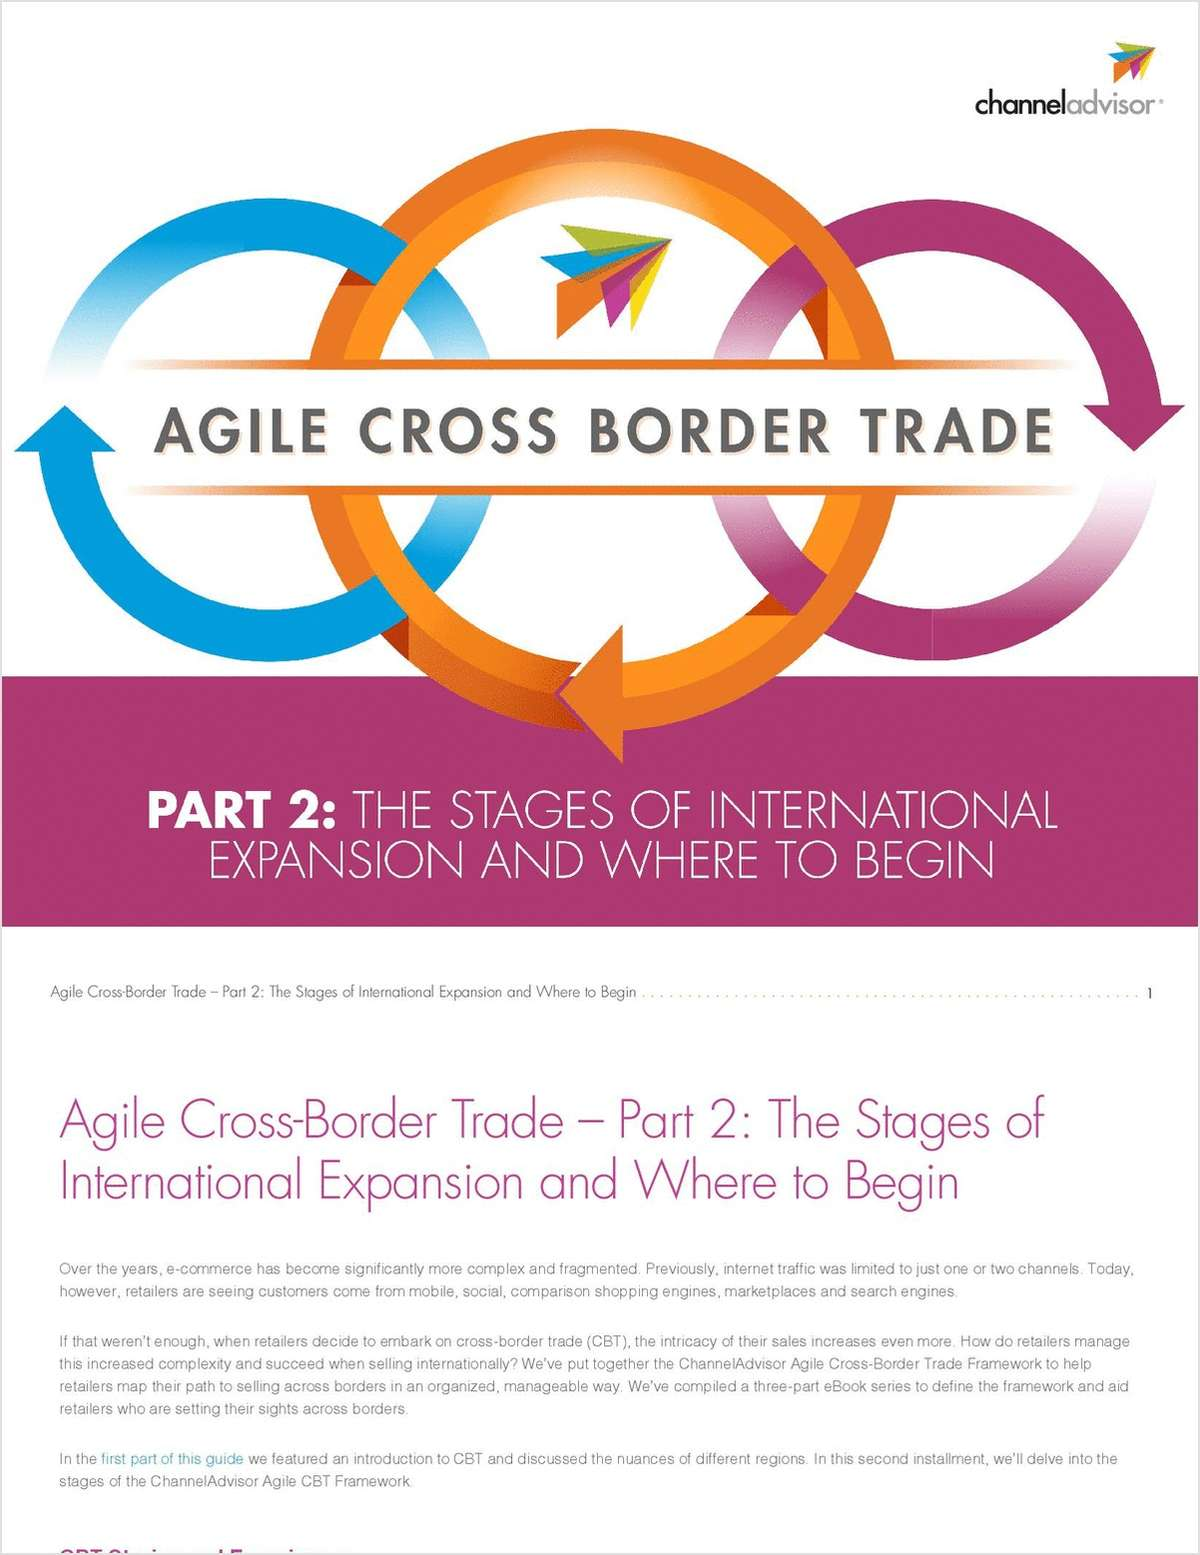 Agile Cross-Border Trade - Part 2: The Stages of International Expansion and Where to Begin